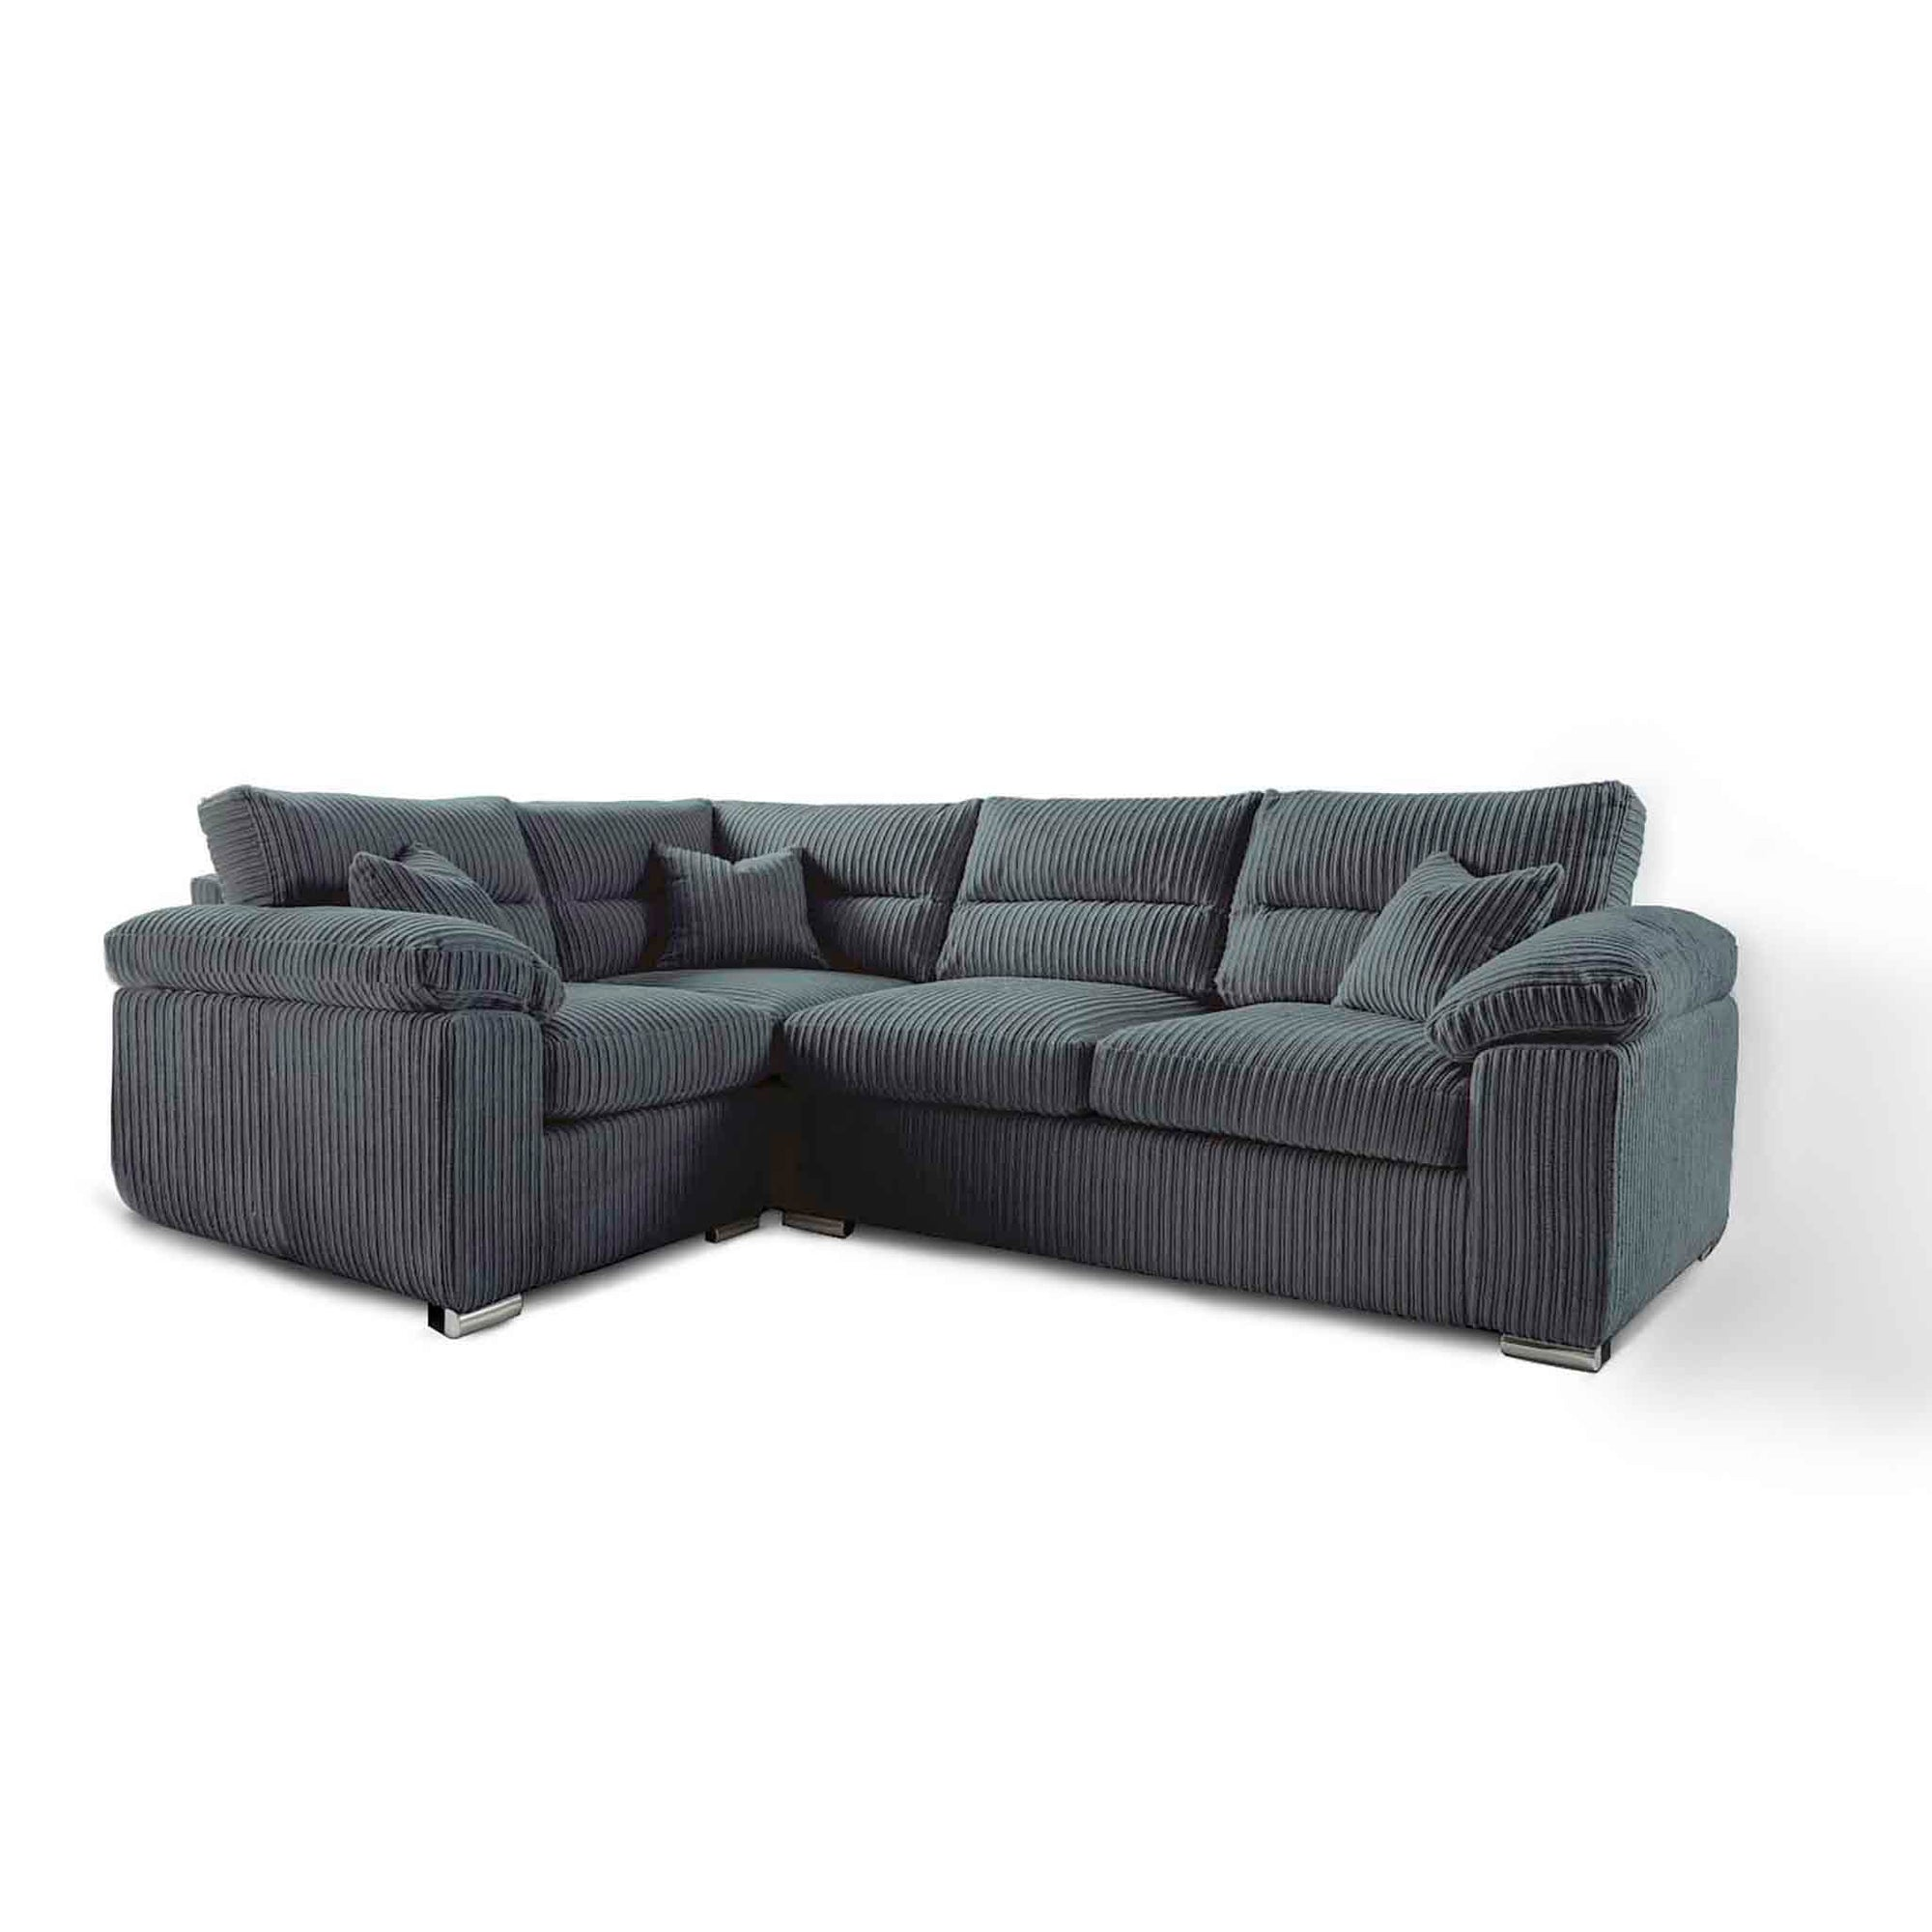 Amalfi Charcoal Right Hand Corner Fabric Sofa from Roseland Furniture